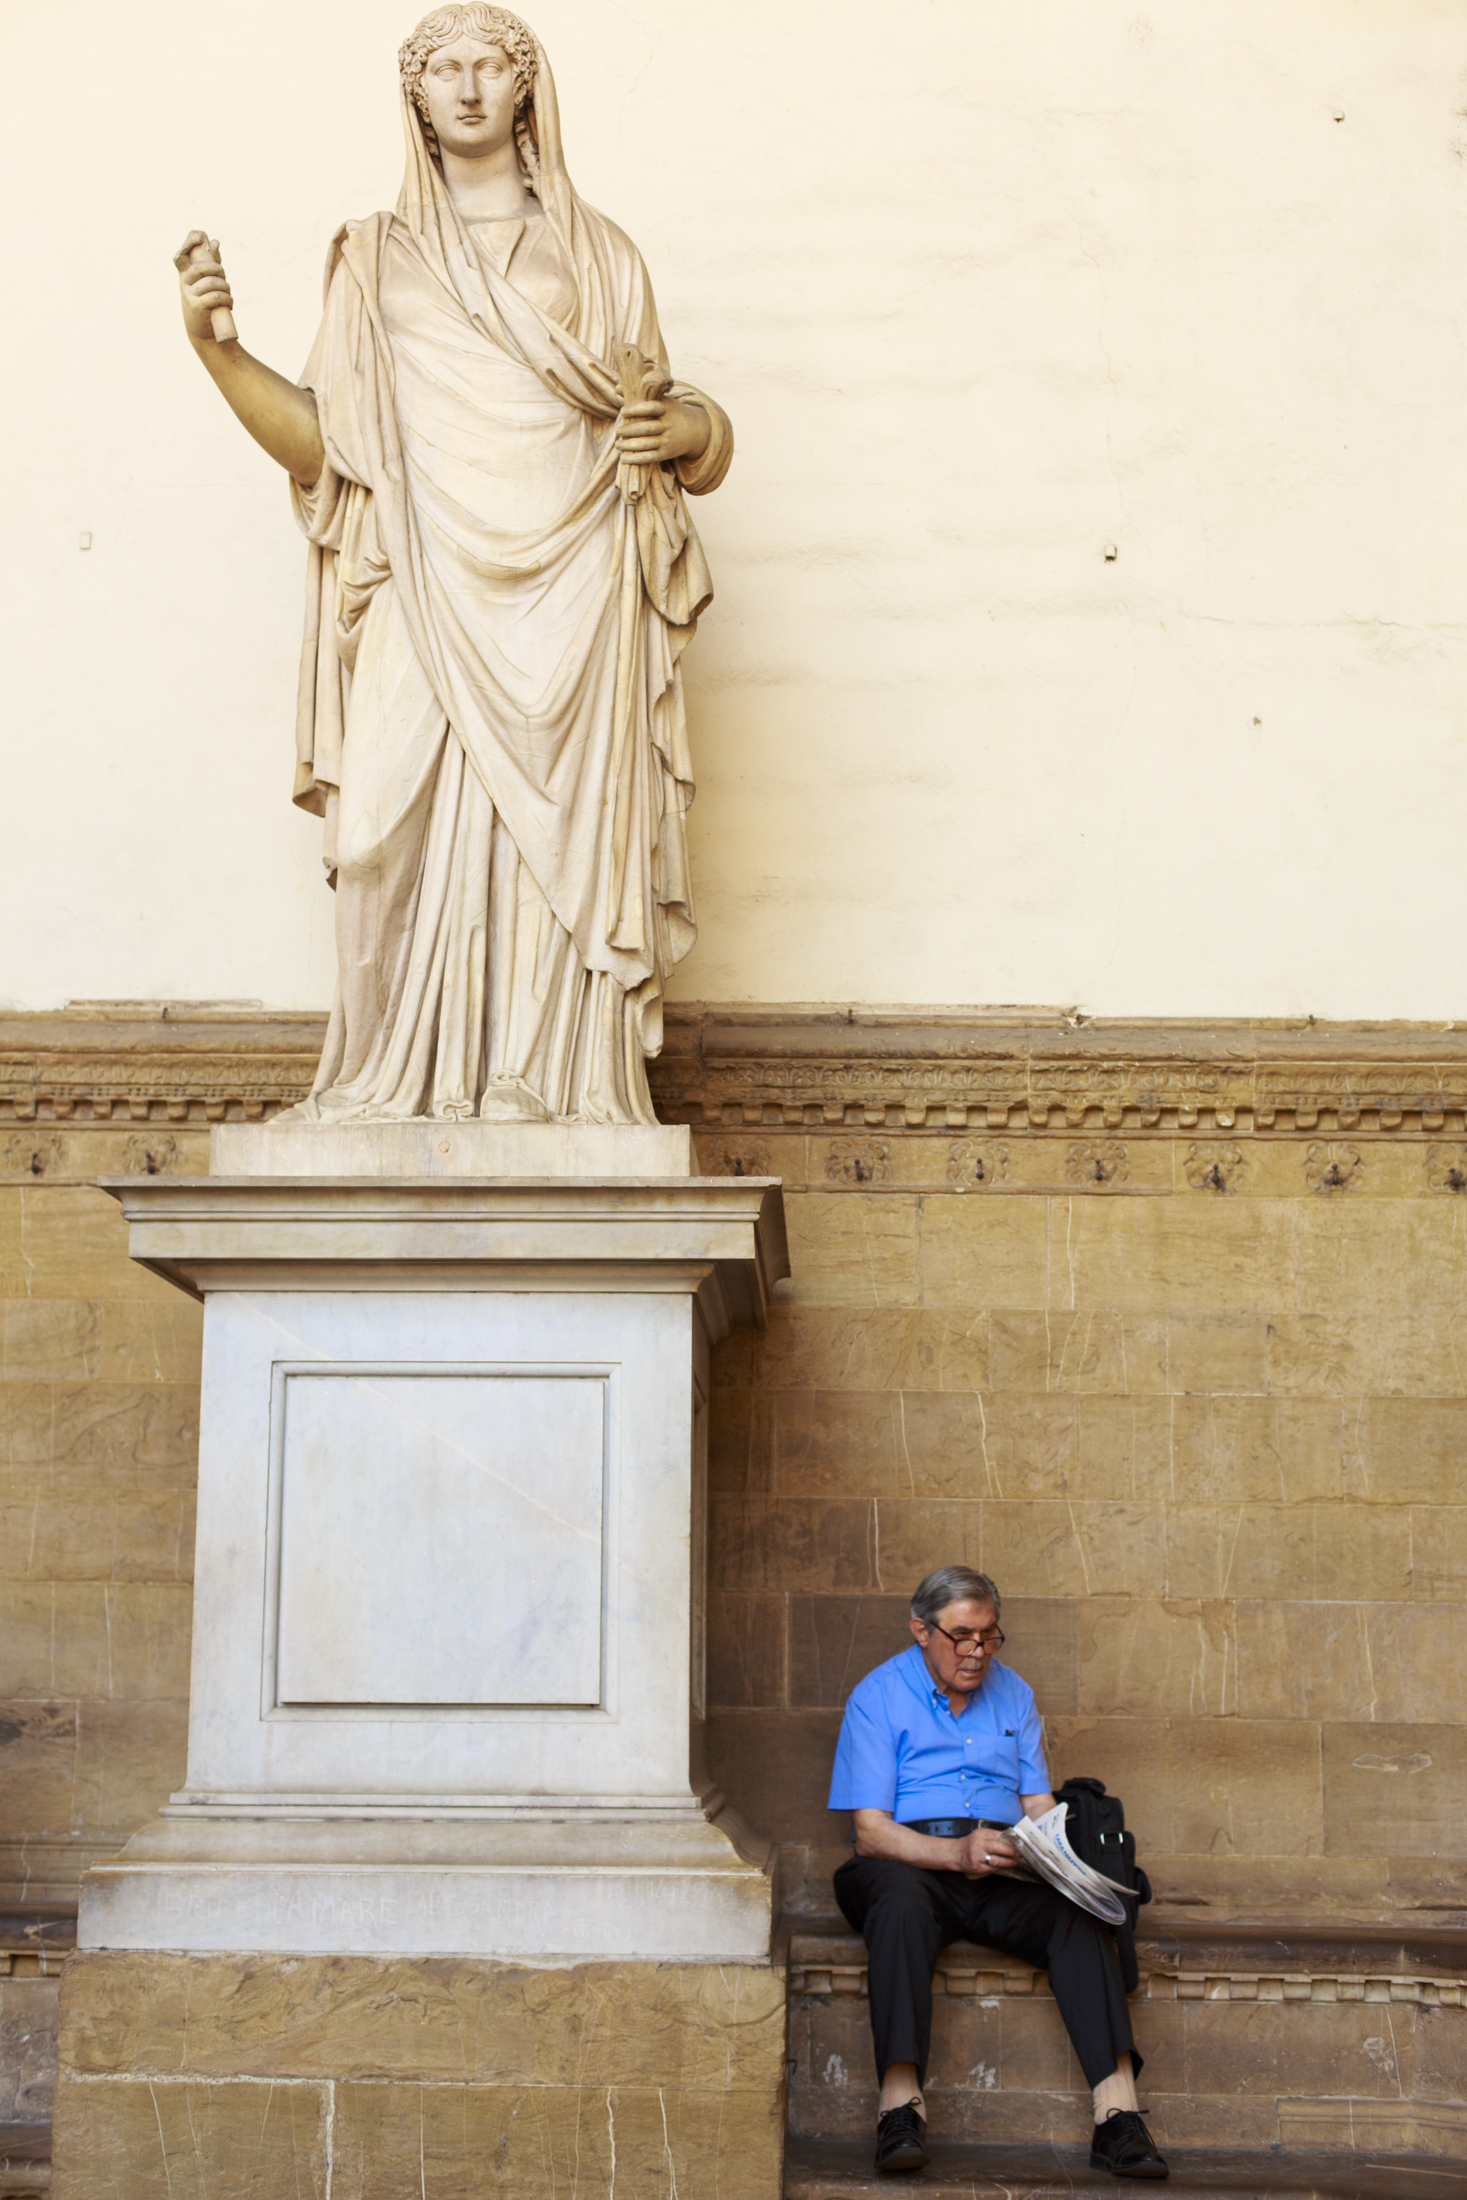 Statue and Man Reading